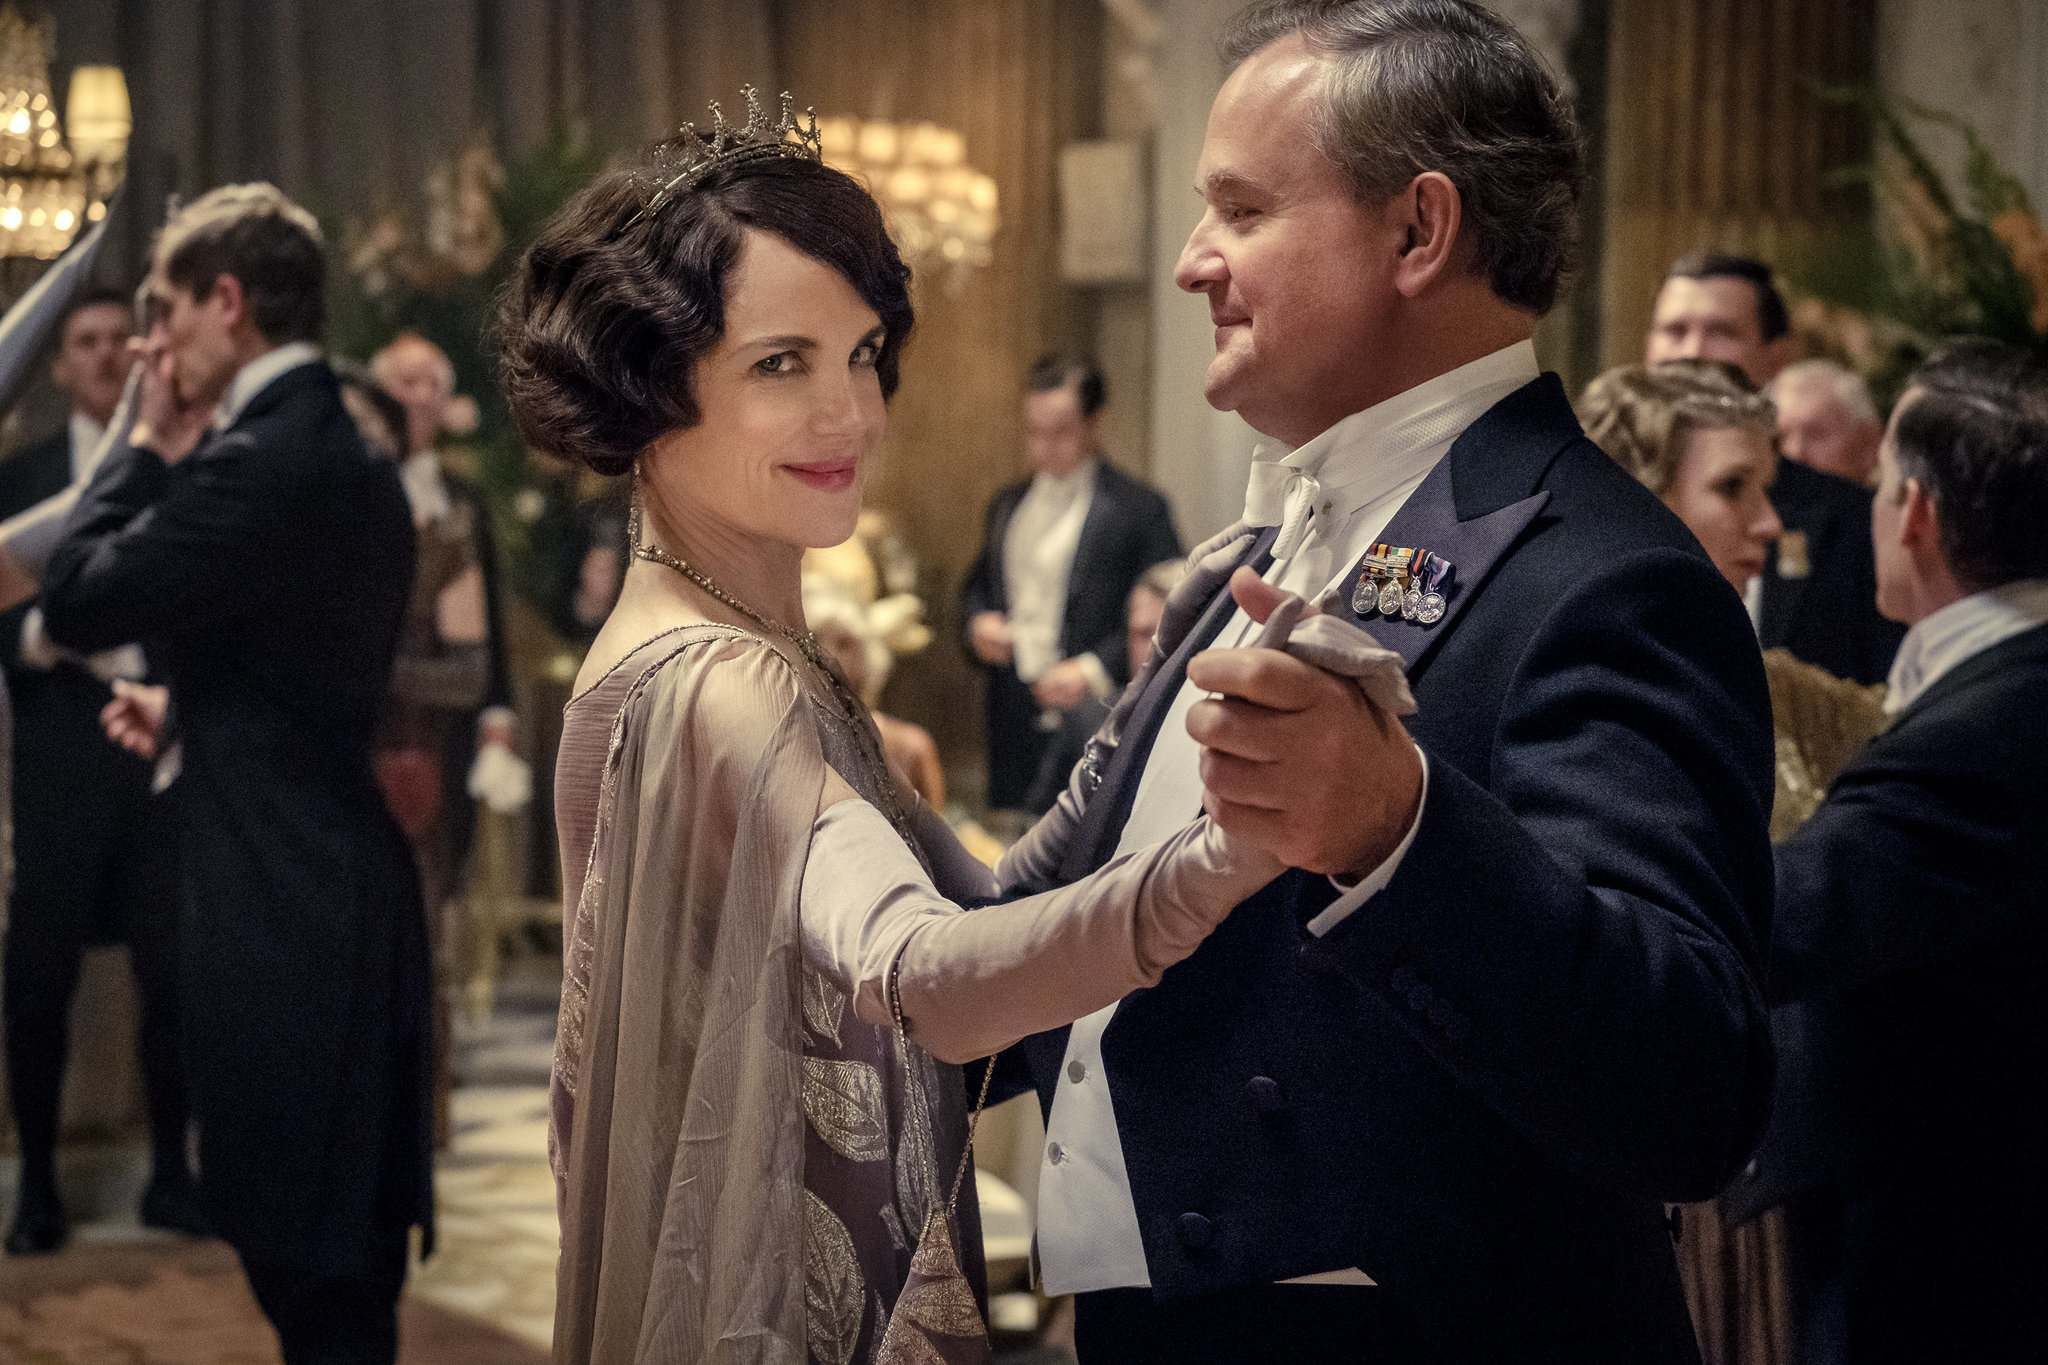 Elizabeth McGovern as Lady Grantham, and Hugh Bonneville, as Lord Grantham, star in Downton Abbey. (Jaap Buitendijk / Focus Features)